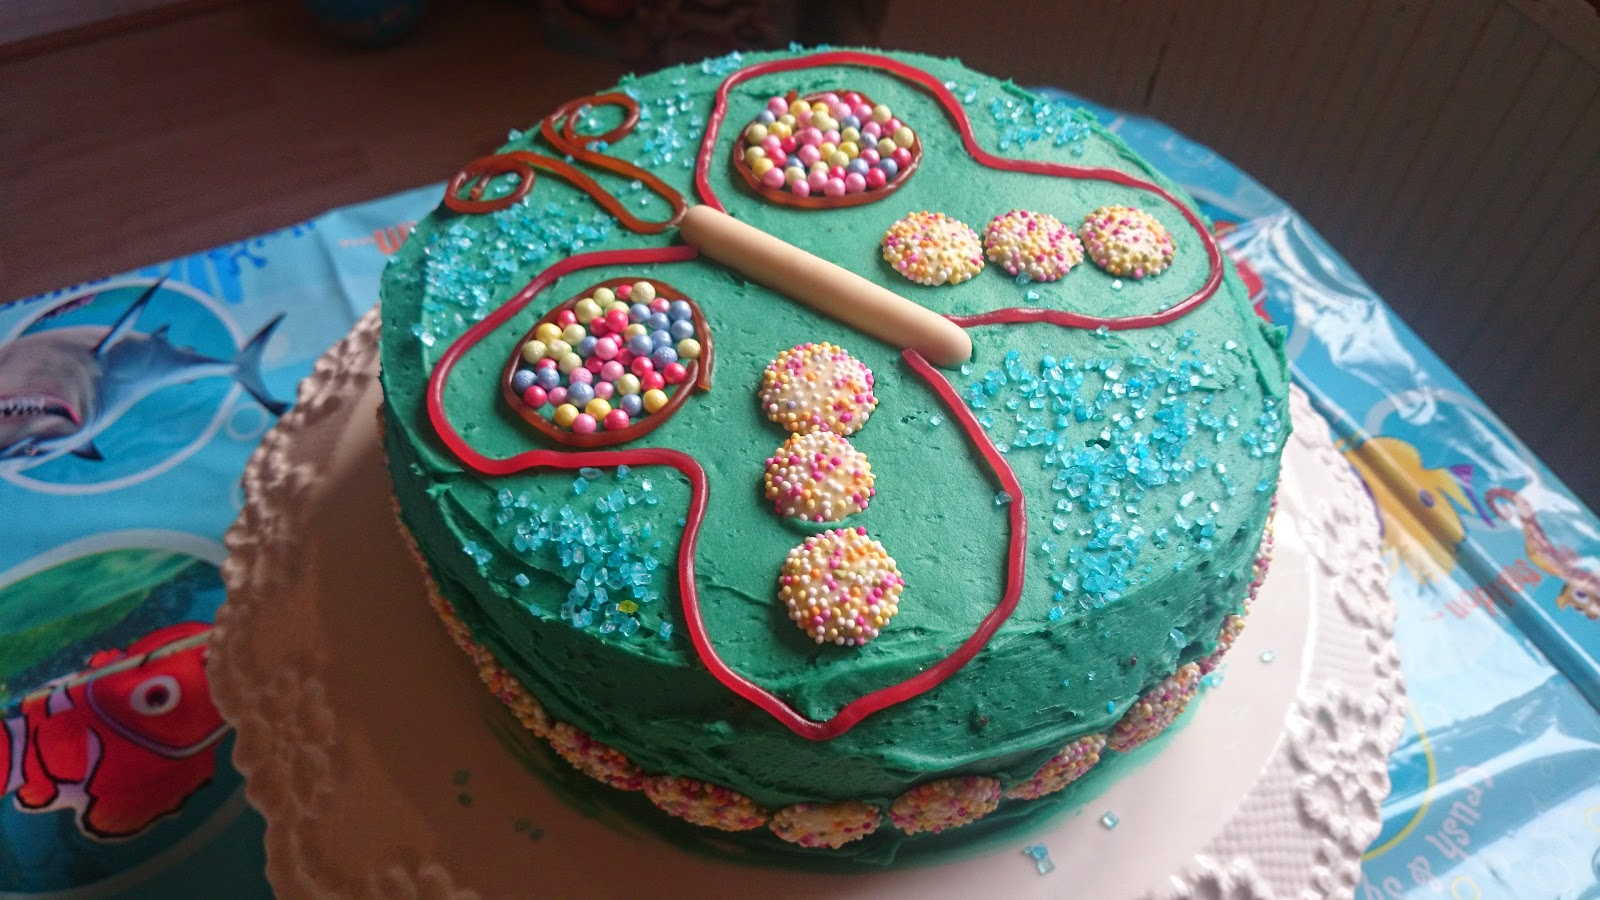 Chocolate Cake And Turquoise Have A Butterfly I Think It Was Bit More Green Than Blue To Be But Other That Did Alright